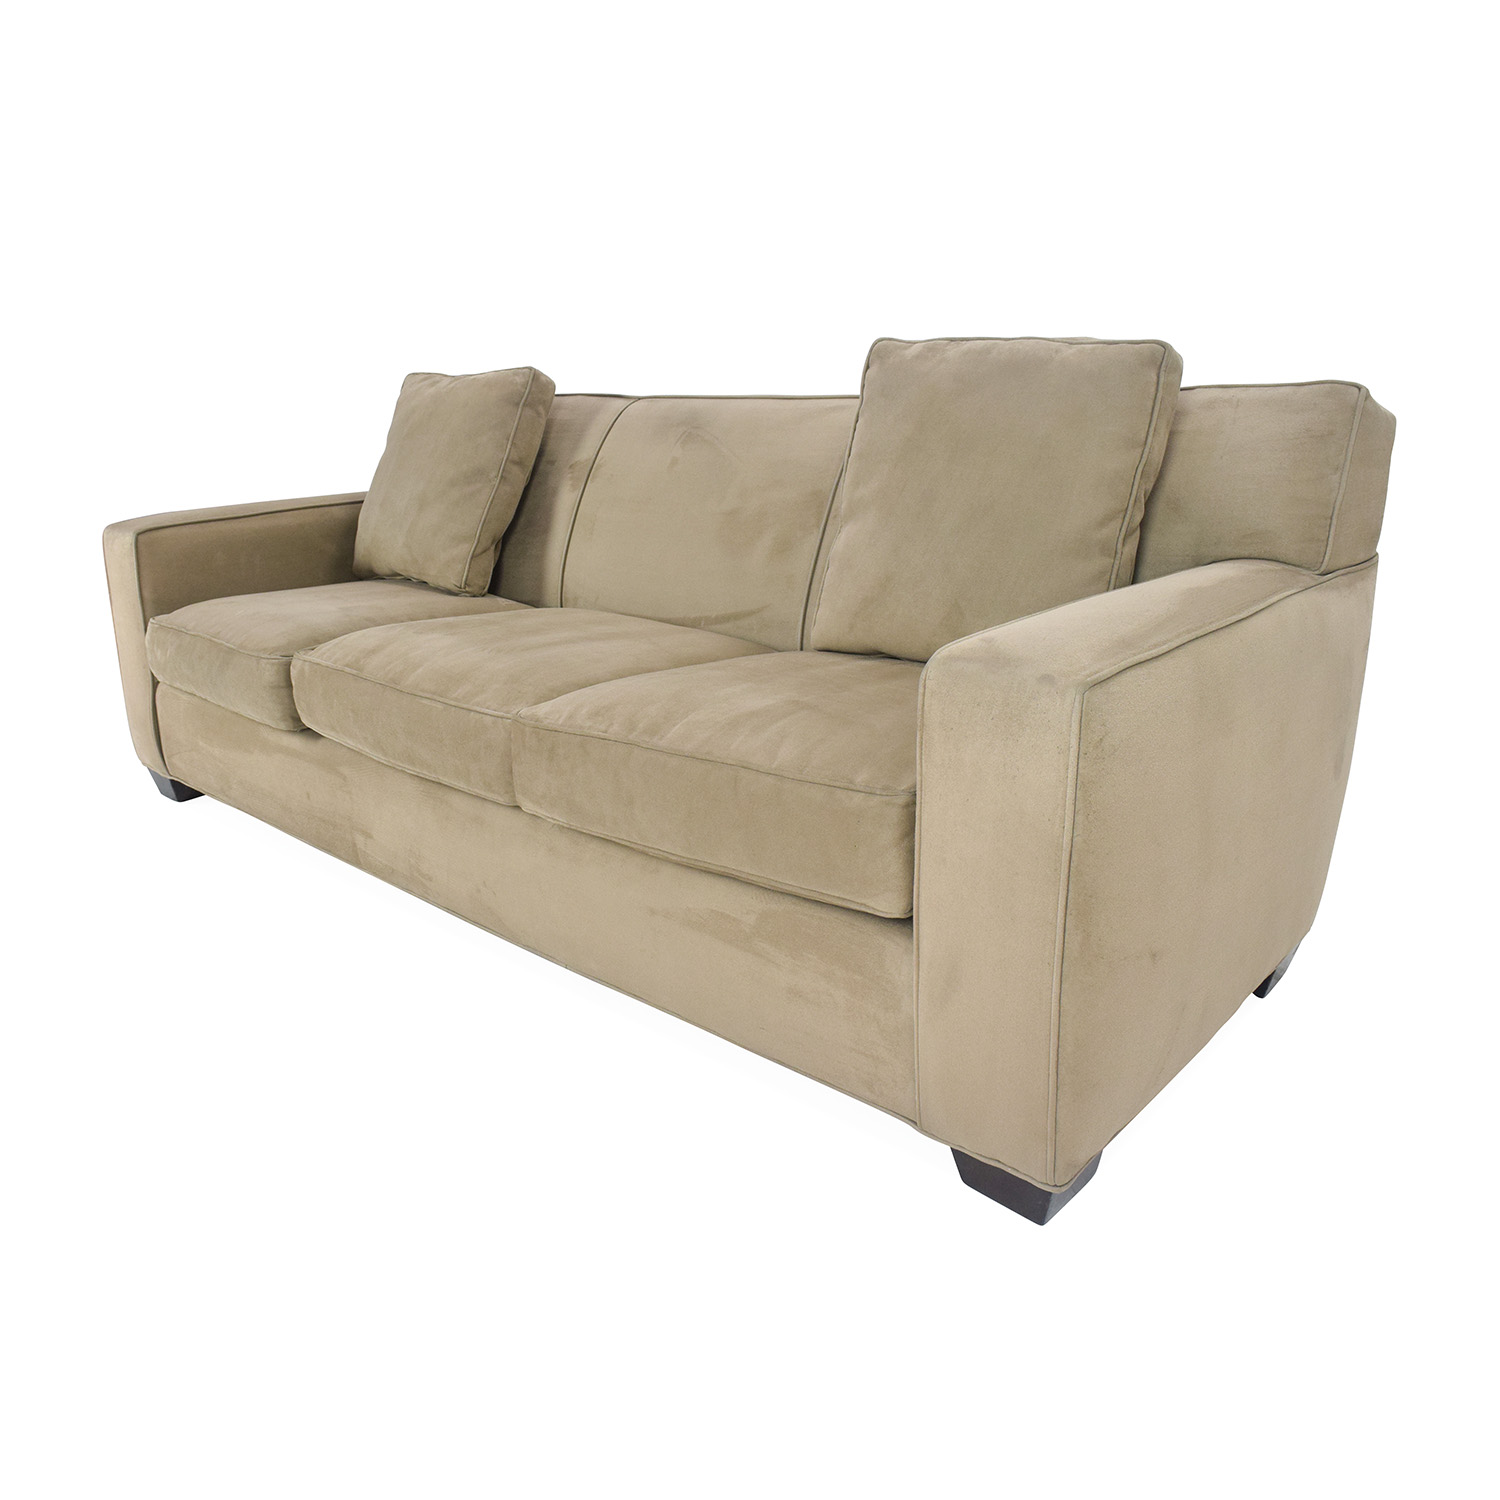 Crate and Barrel Cameron | Crate and Barrel Couch | Crate and Barrel Discontinued Furniture